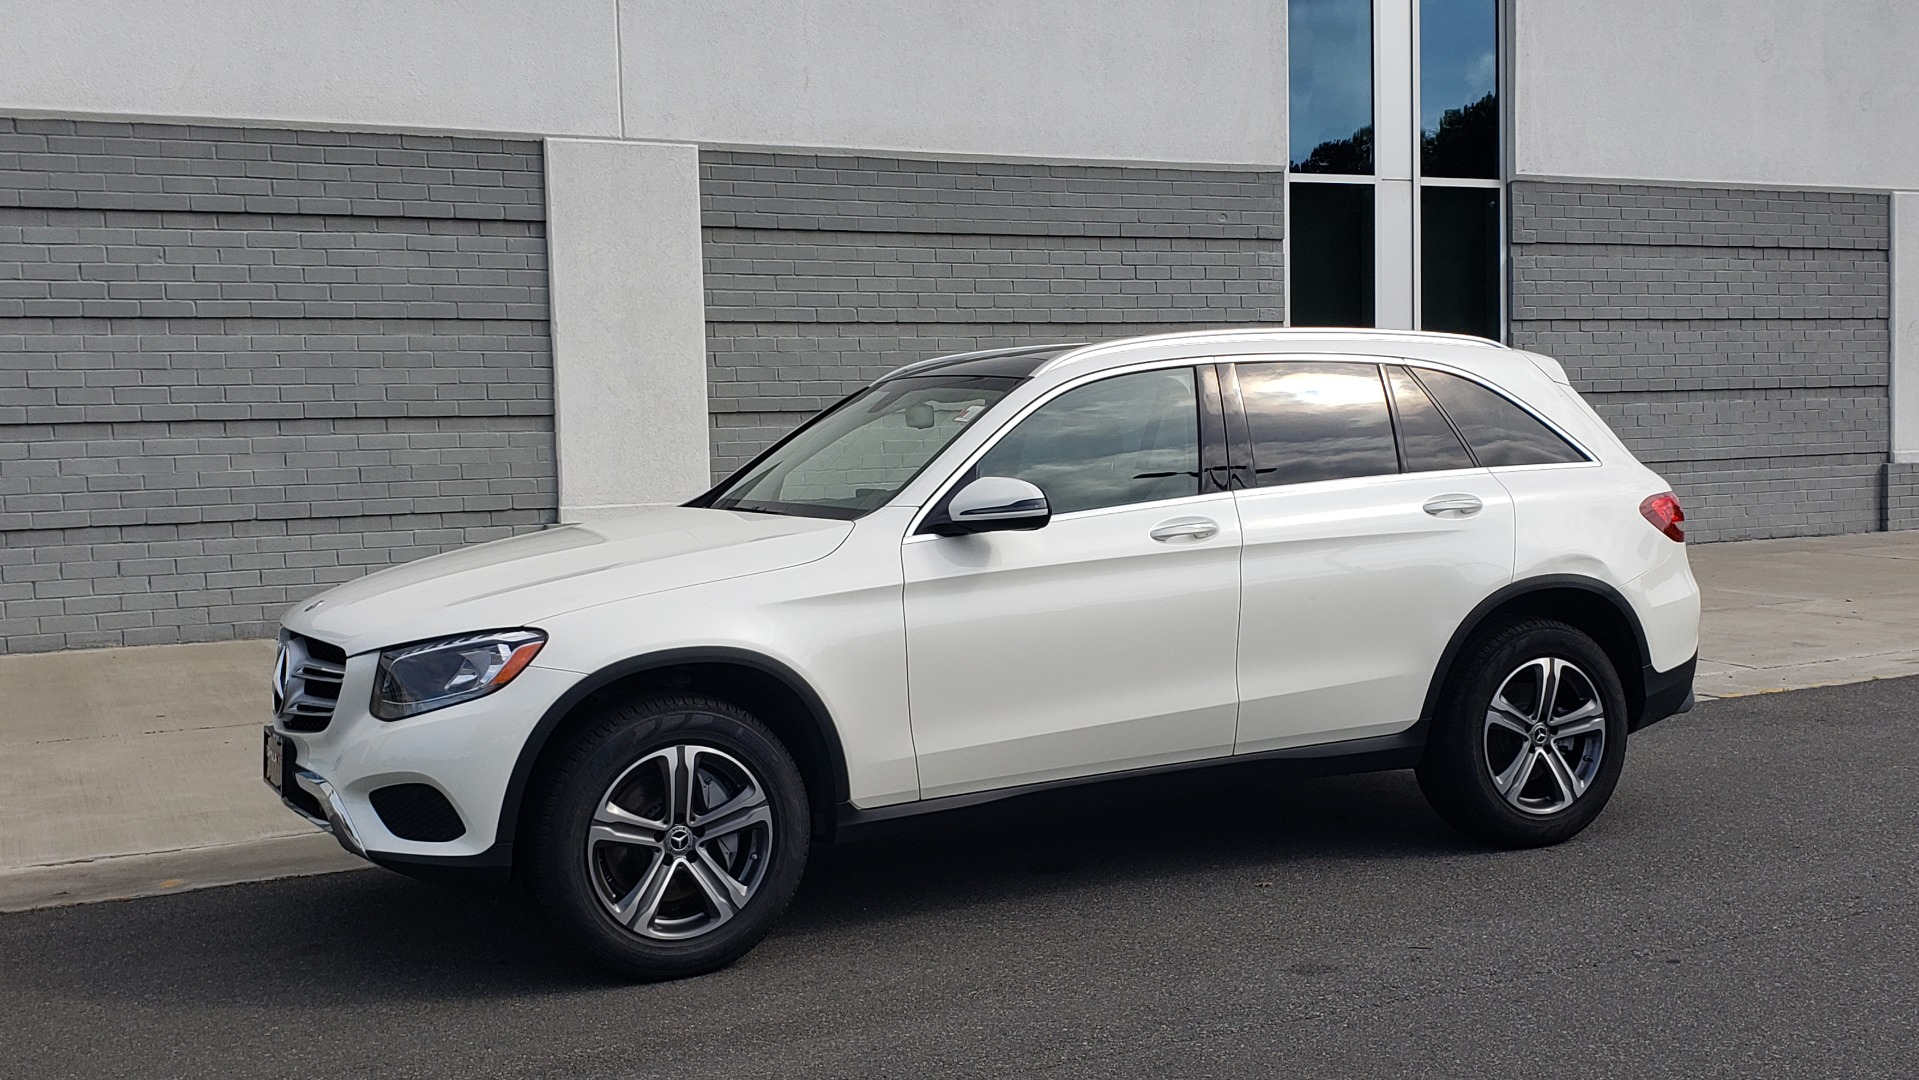 Used 2018 Mercedes-Benz GLC 300 4MATIC / PREM PKG / PANO-ROOF / APPLE / REARVIEW for sale $33,397 at Formula Imports in Charlotte NC 28227 4